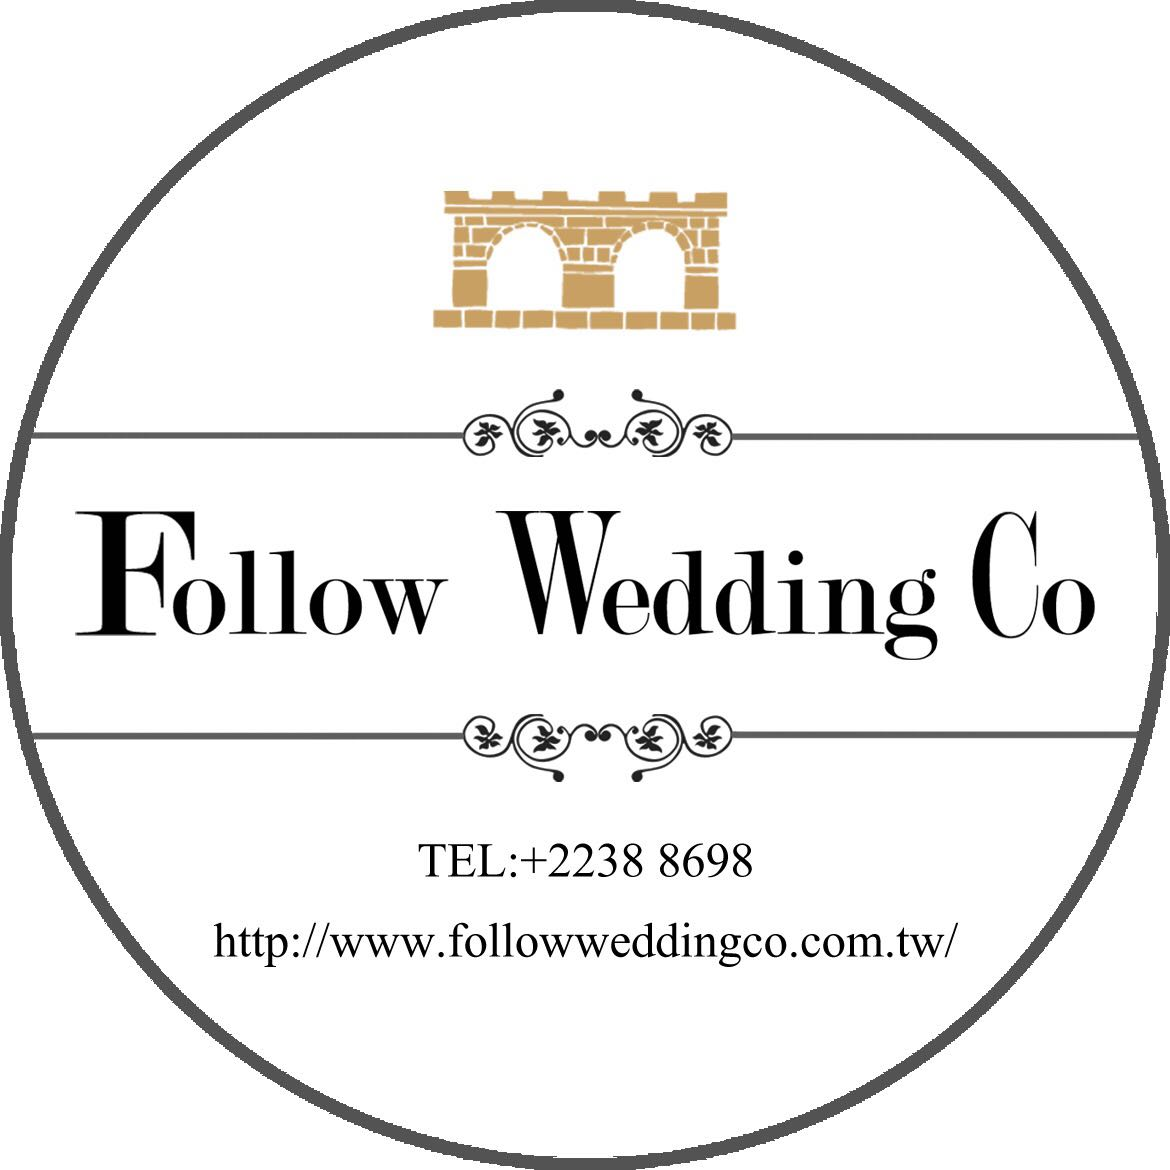 followweddingco